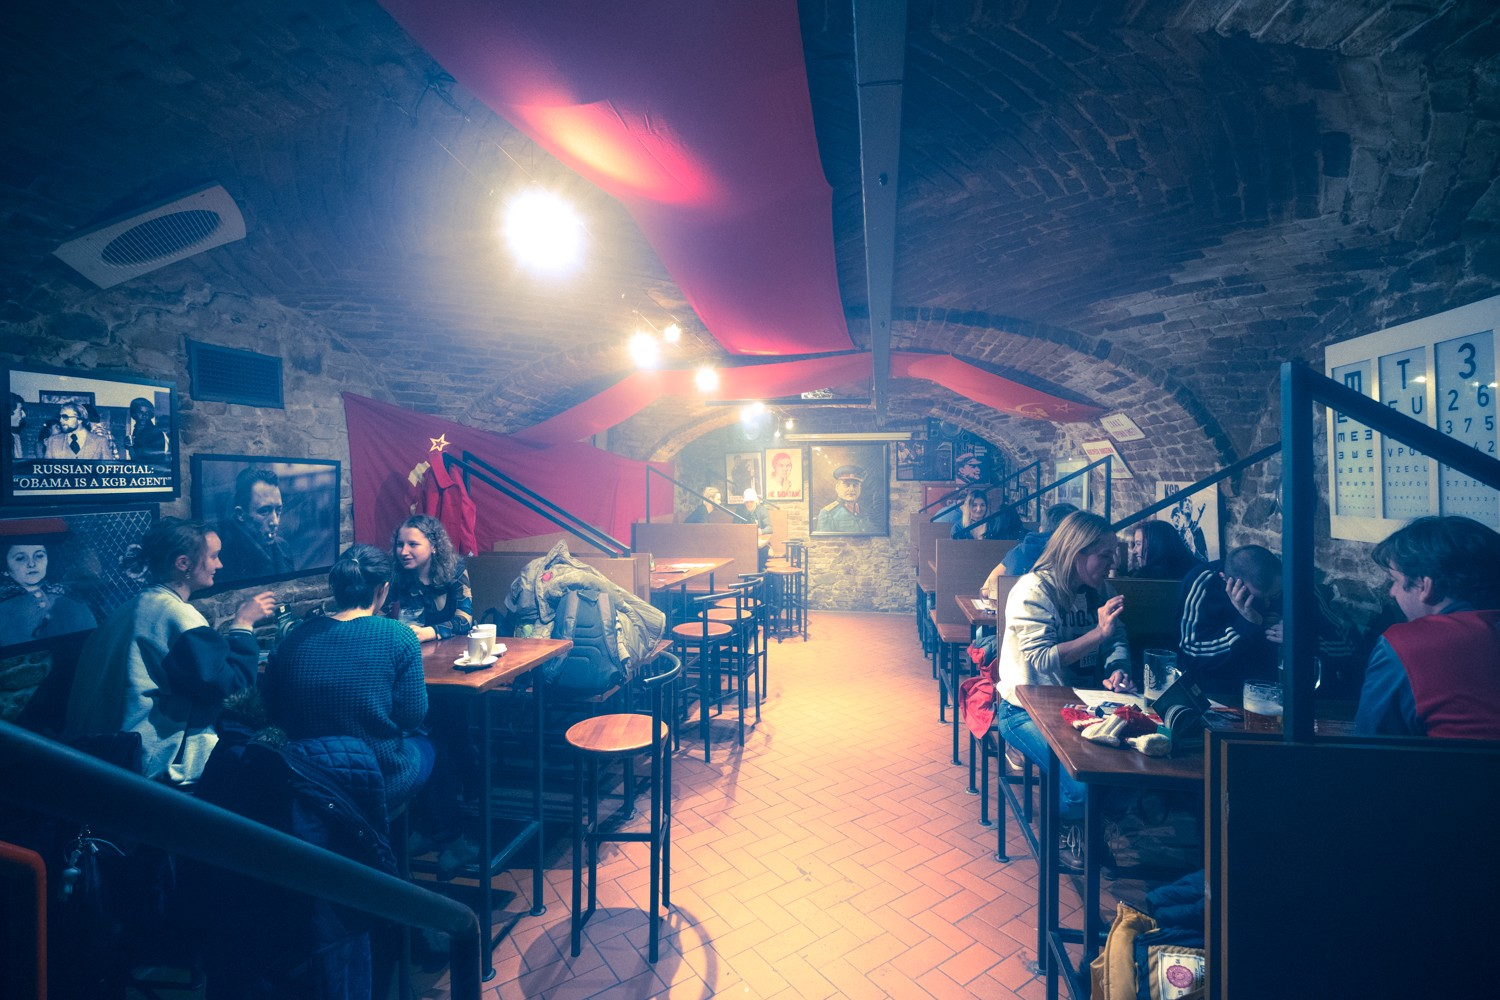 KGB Bar in Bratislava, Slovakia, with it's mysterious smoke-filled atmosphere and communist era memorabilia.